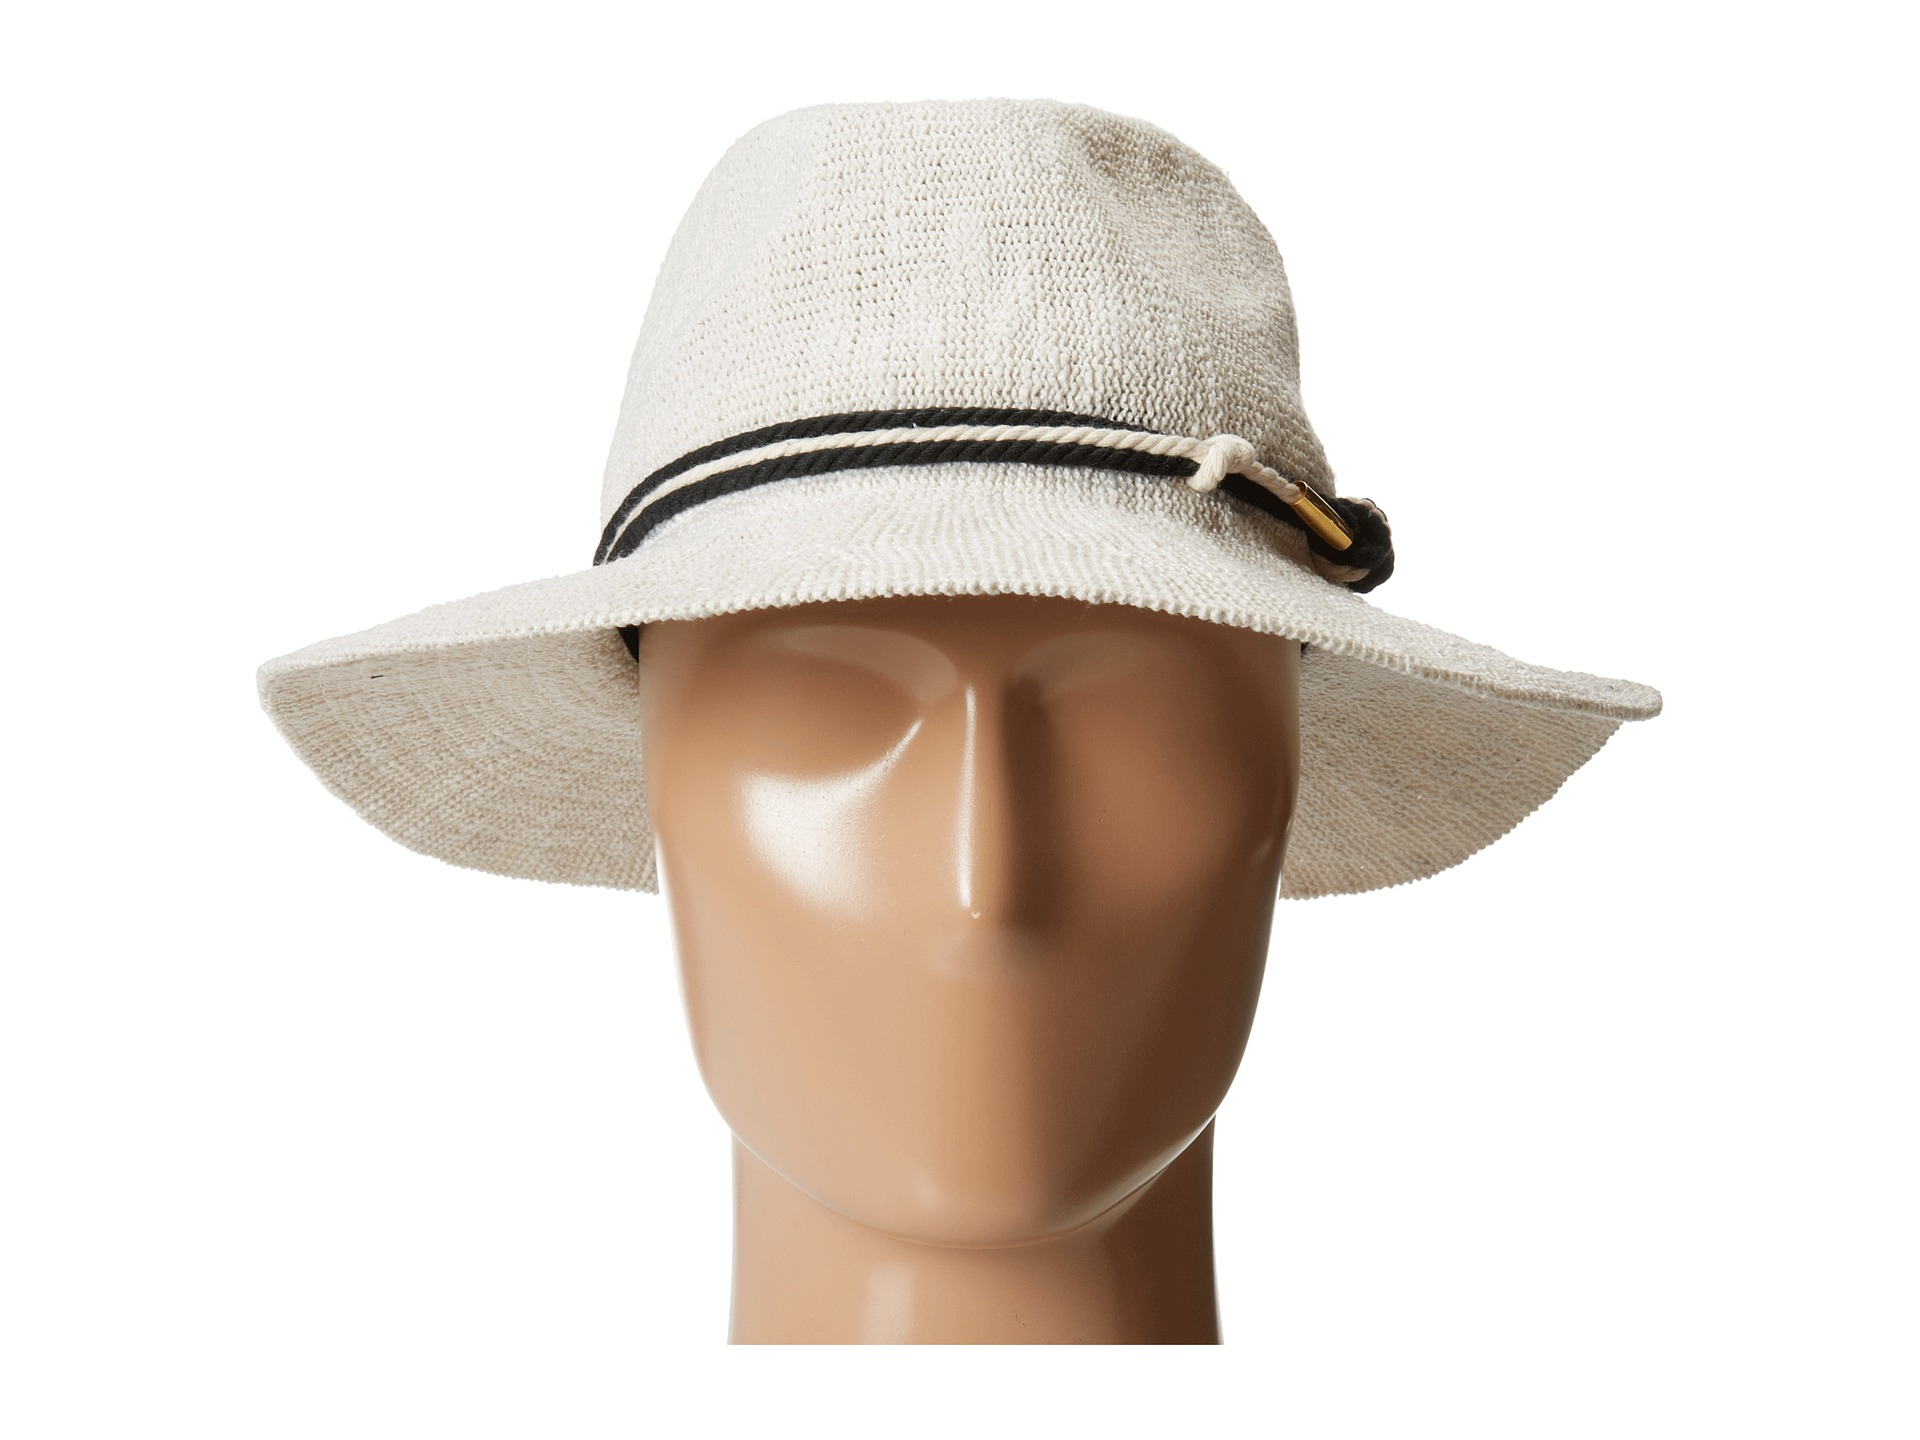 64af277a3 Vince Camuto White Rope Knotted Banded Panama